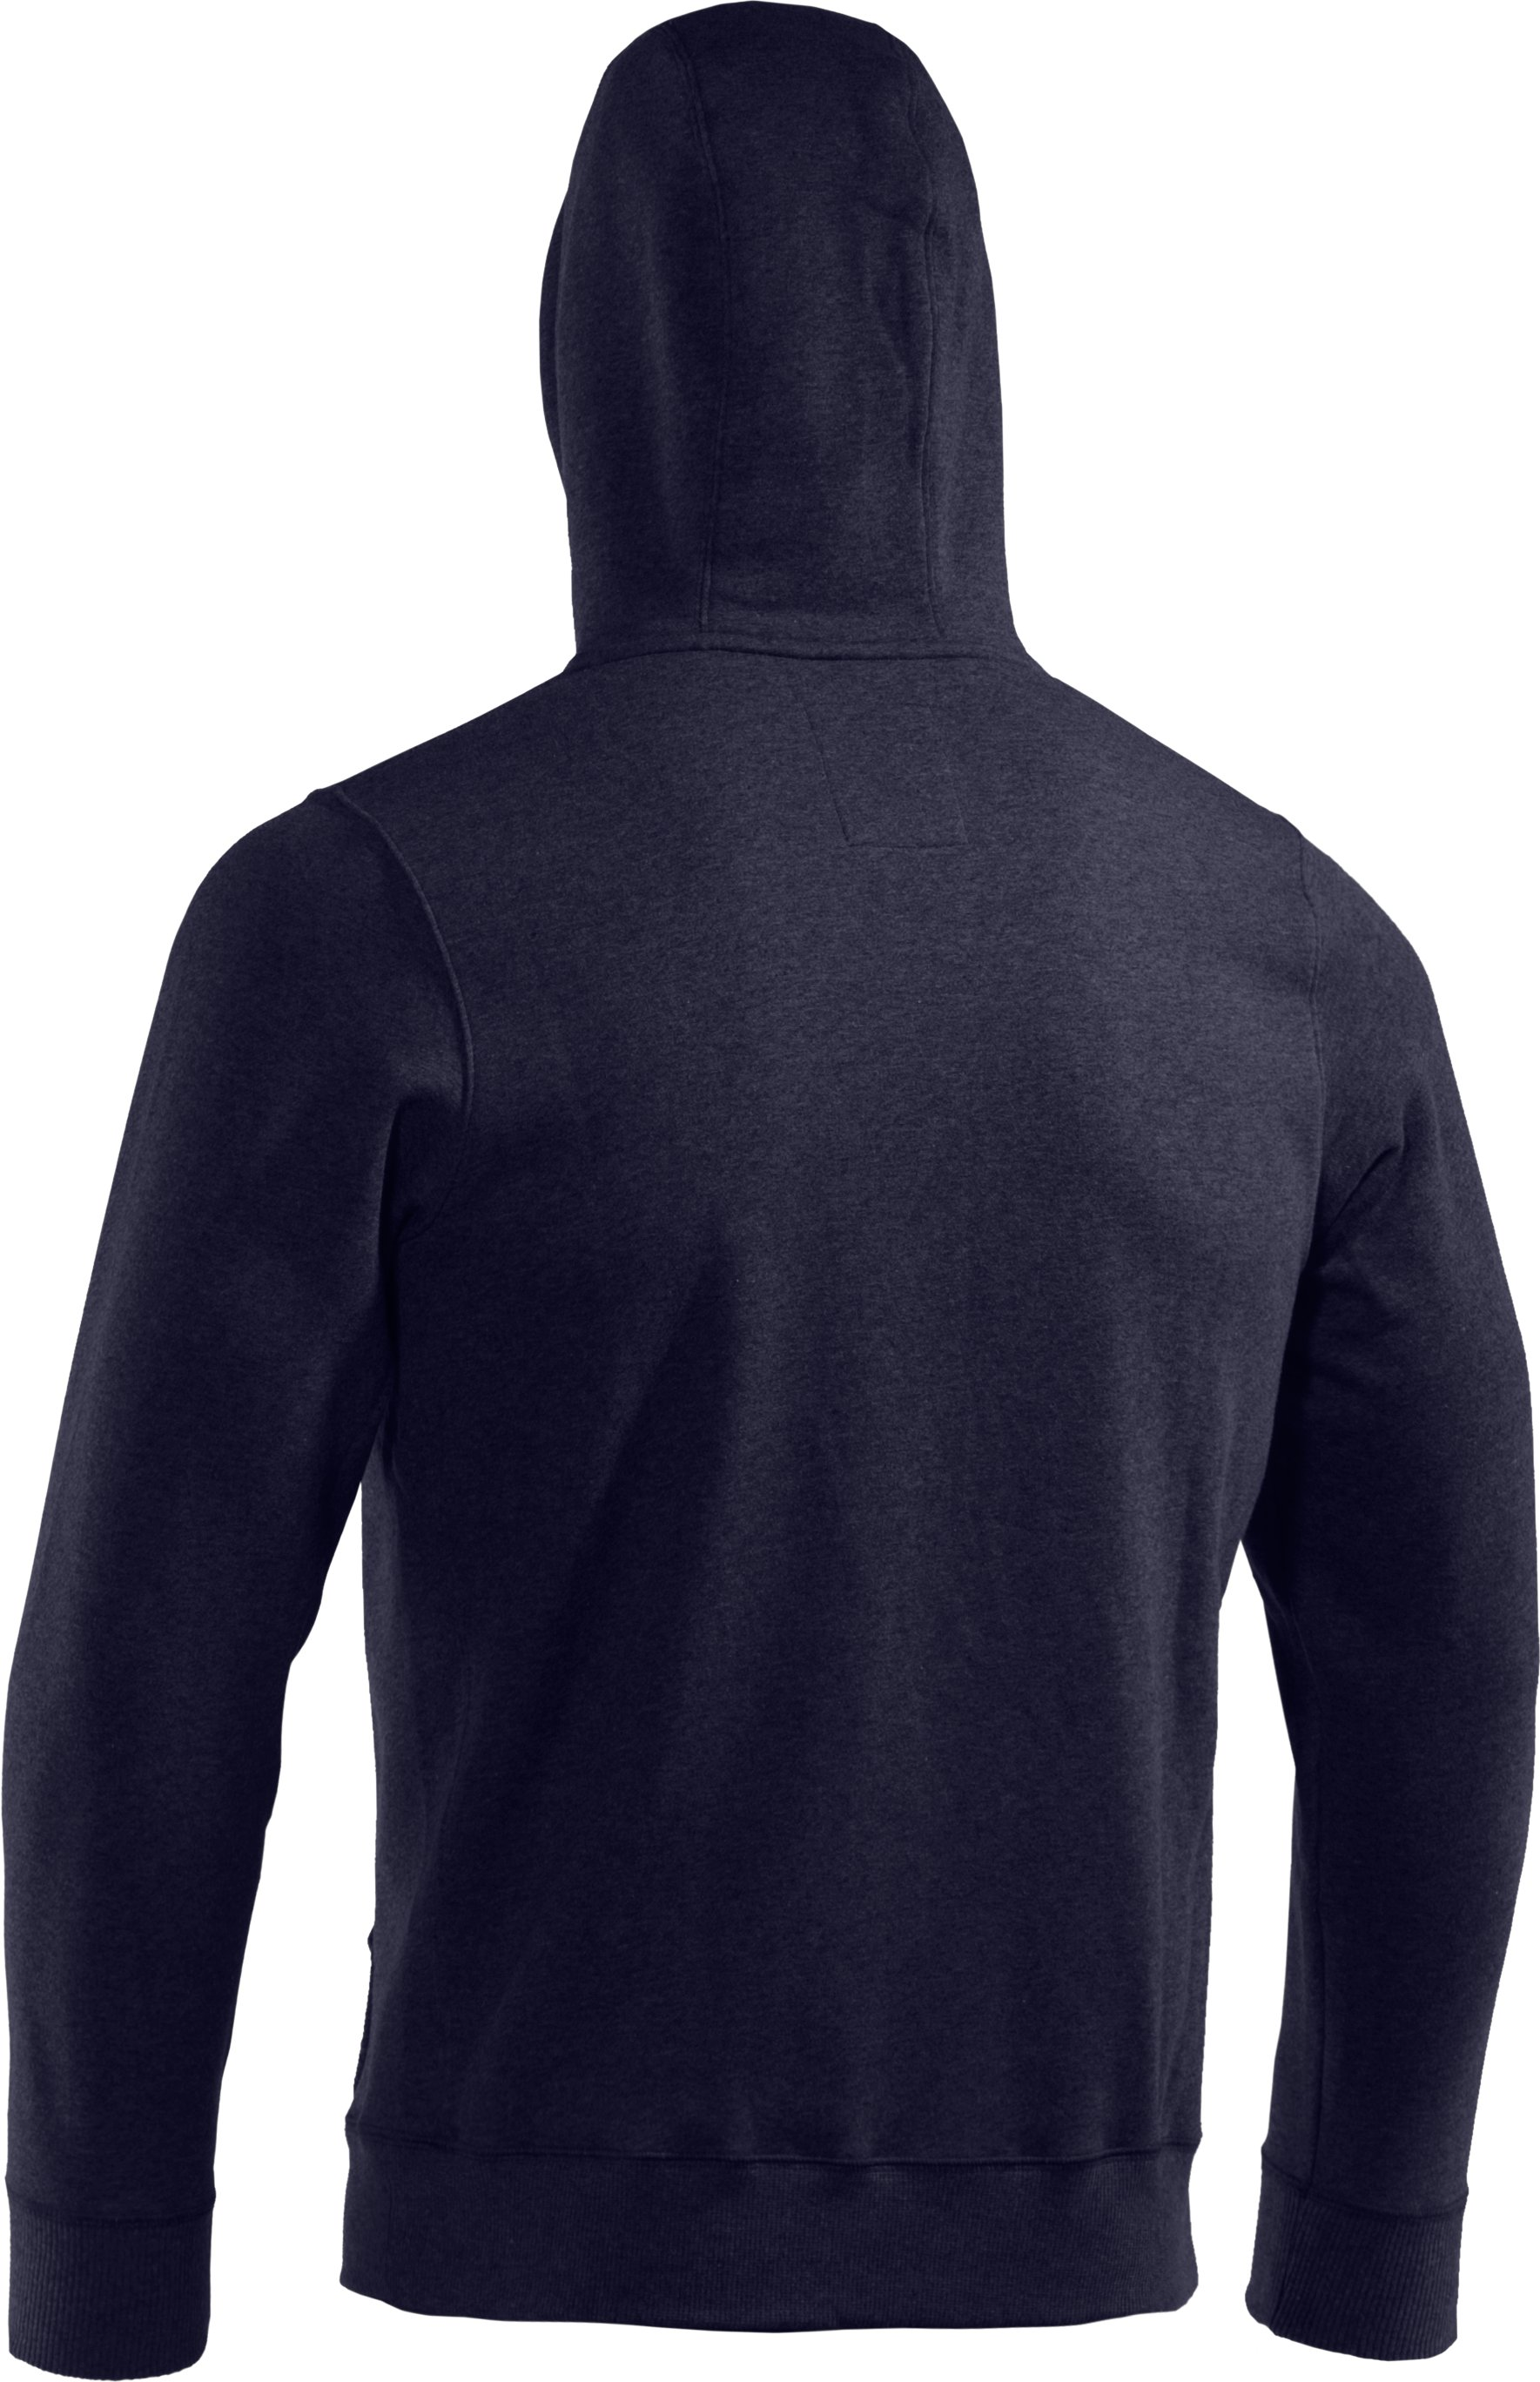 Men's Charged Cotton® Storm Full Zip Hoodie, Midnight Navy,